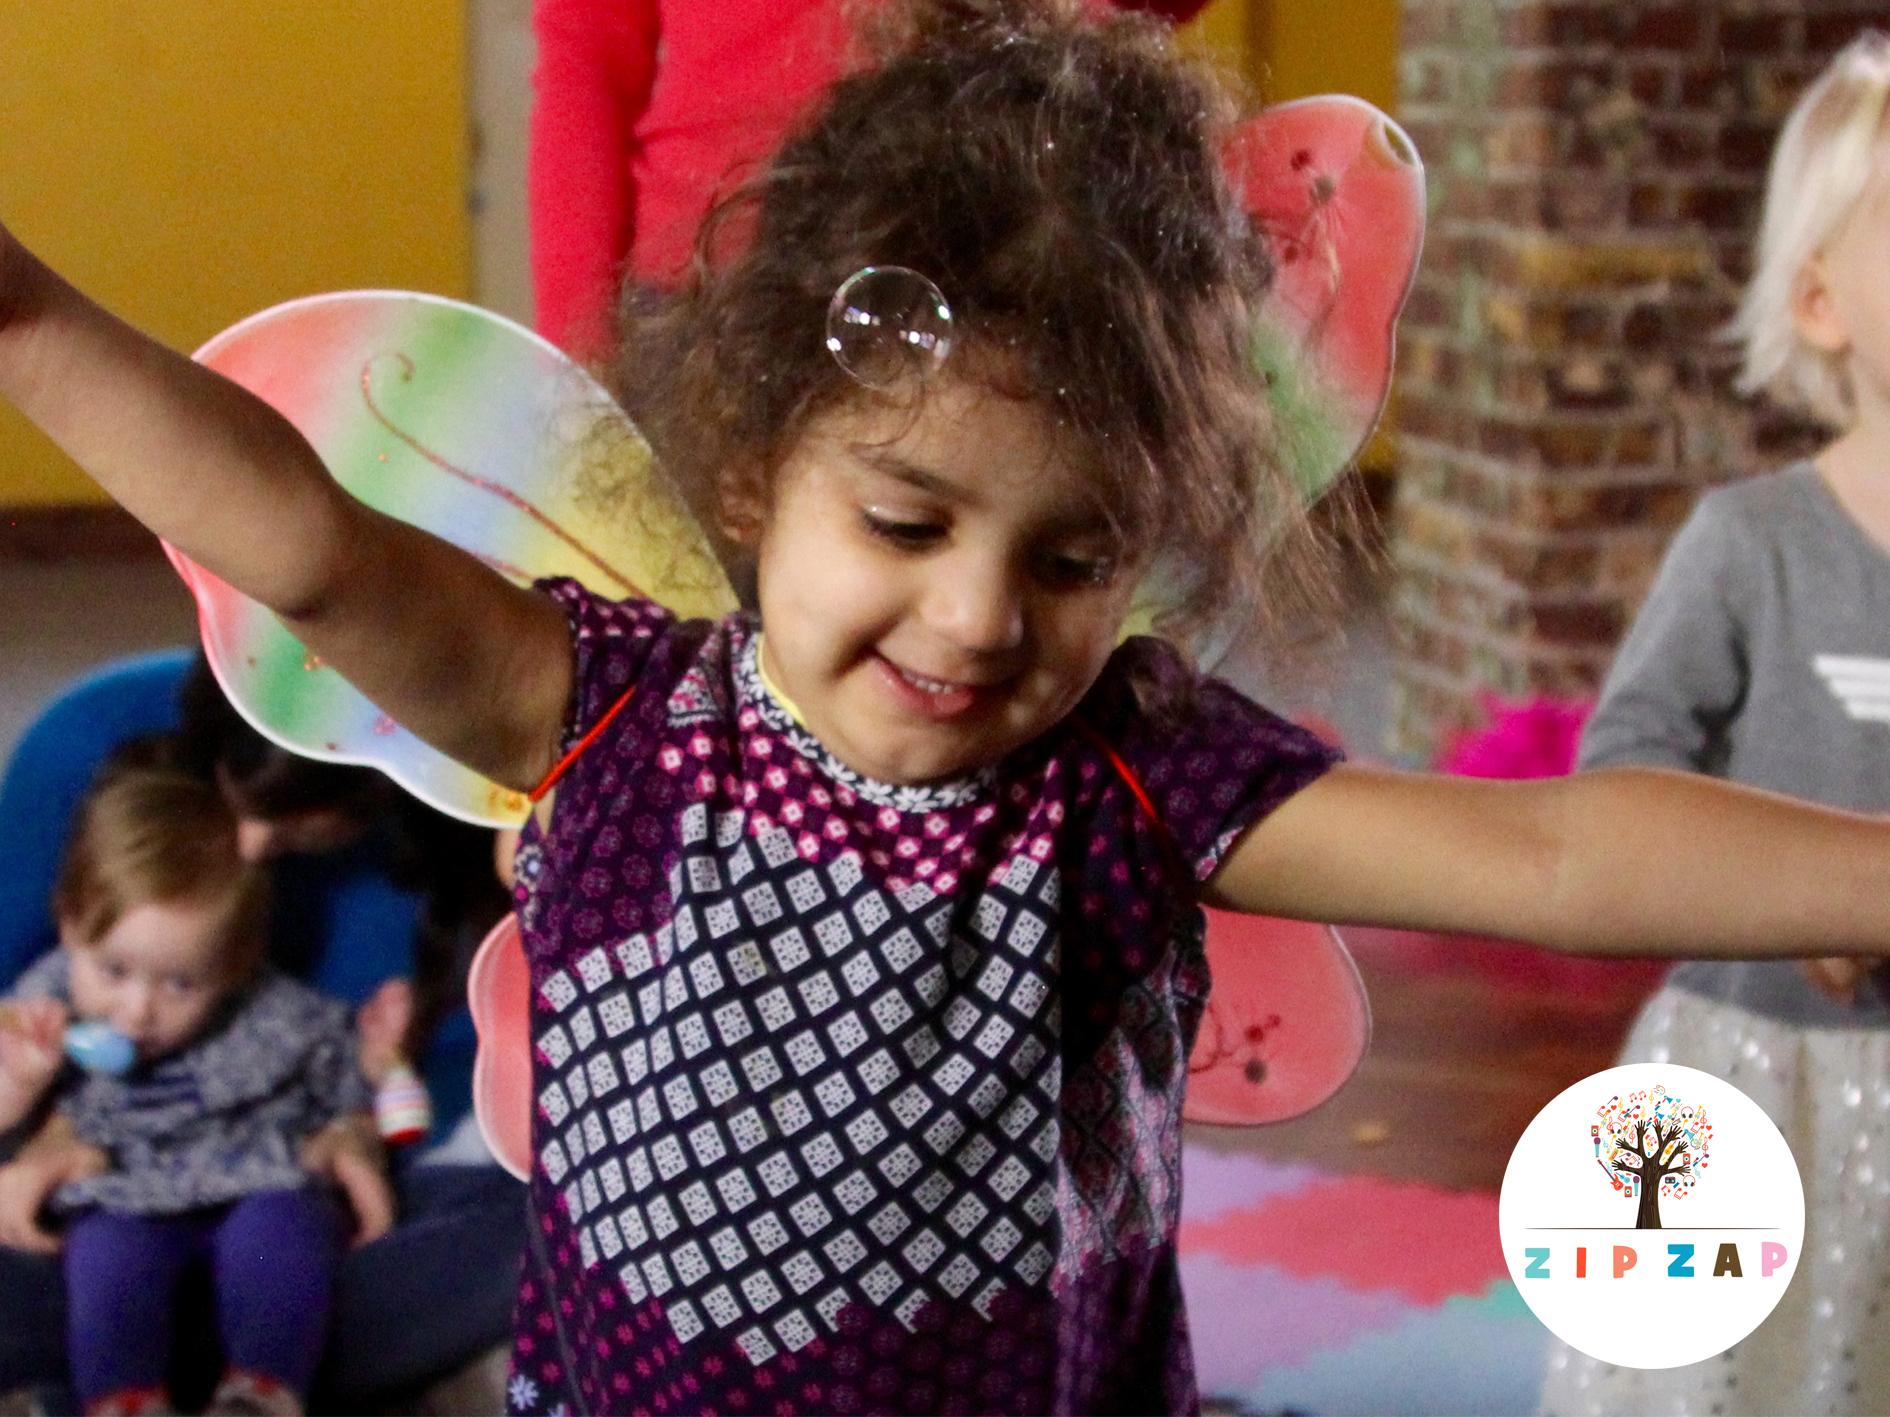 ZipZap  provide weekly drama, music and sensory classes in North London for children under 5, and make use of the flexibility of single session prices for over twenty weekly classes.